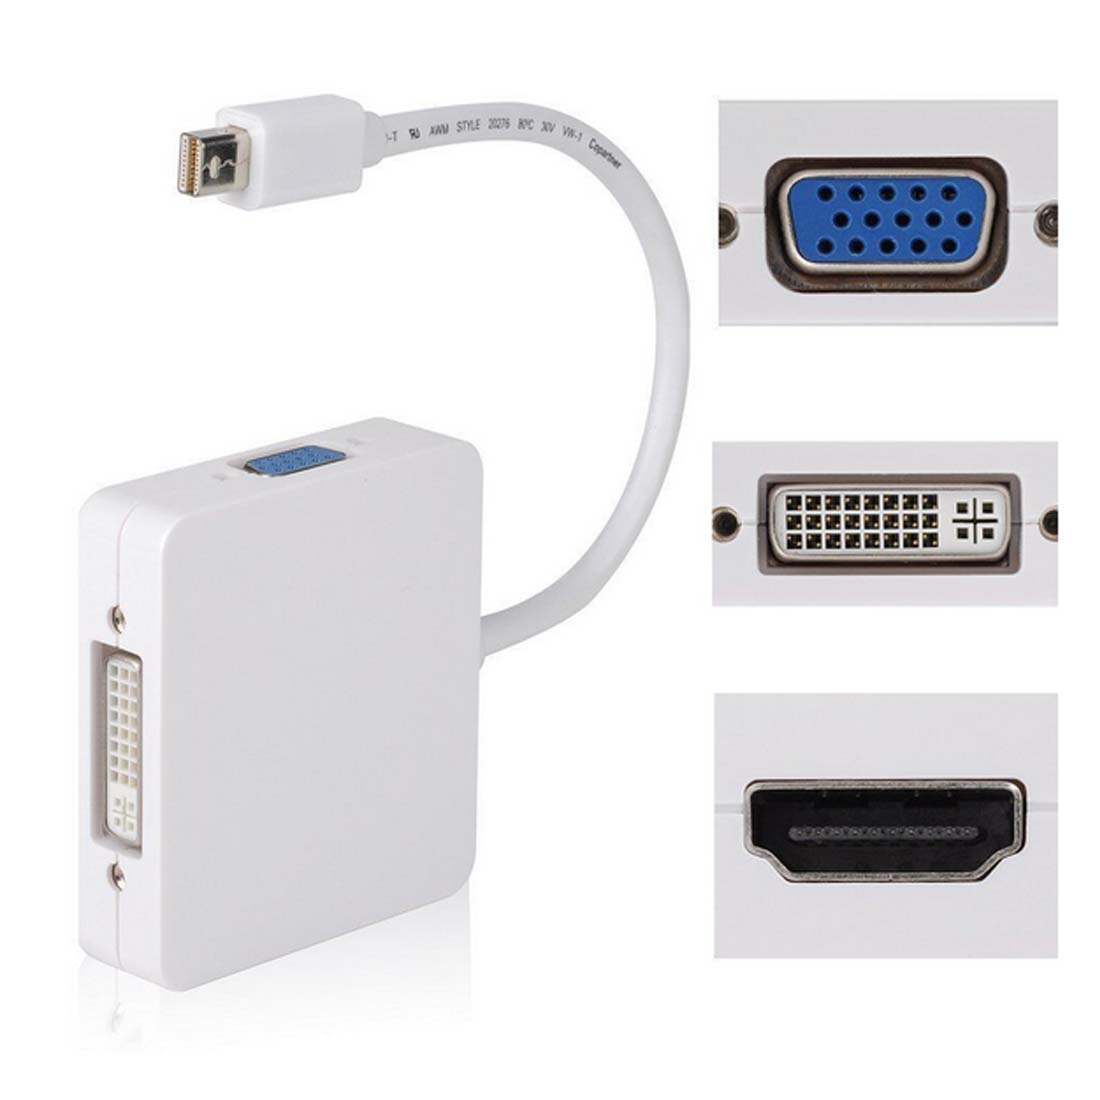 Marsnaska 3 in1 Thunderbolt Mini Displayport DP to HDMI DVI VGA Adapter Display port Cable for apple MacBook Pro Mac Book Air samsung rs 21 klmr